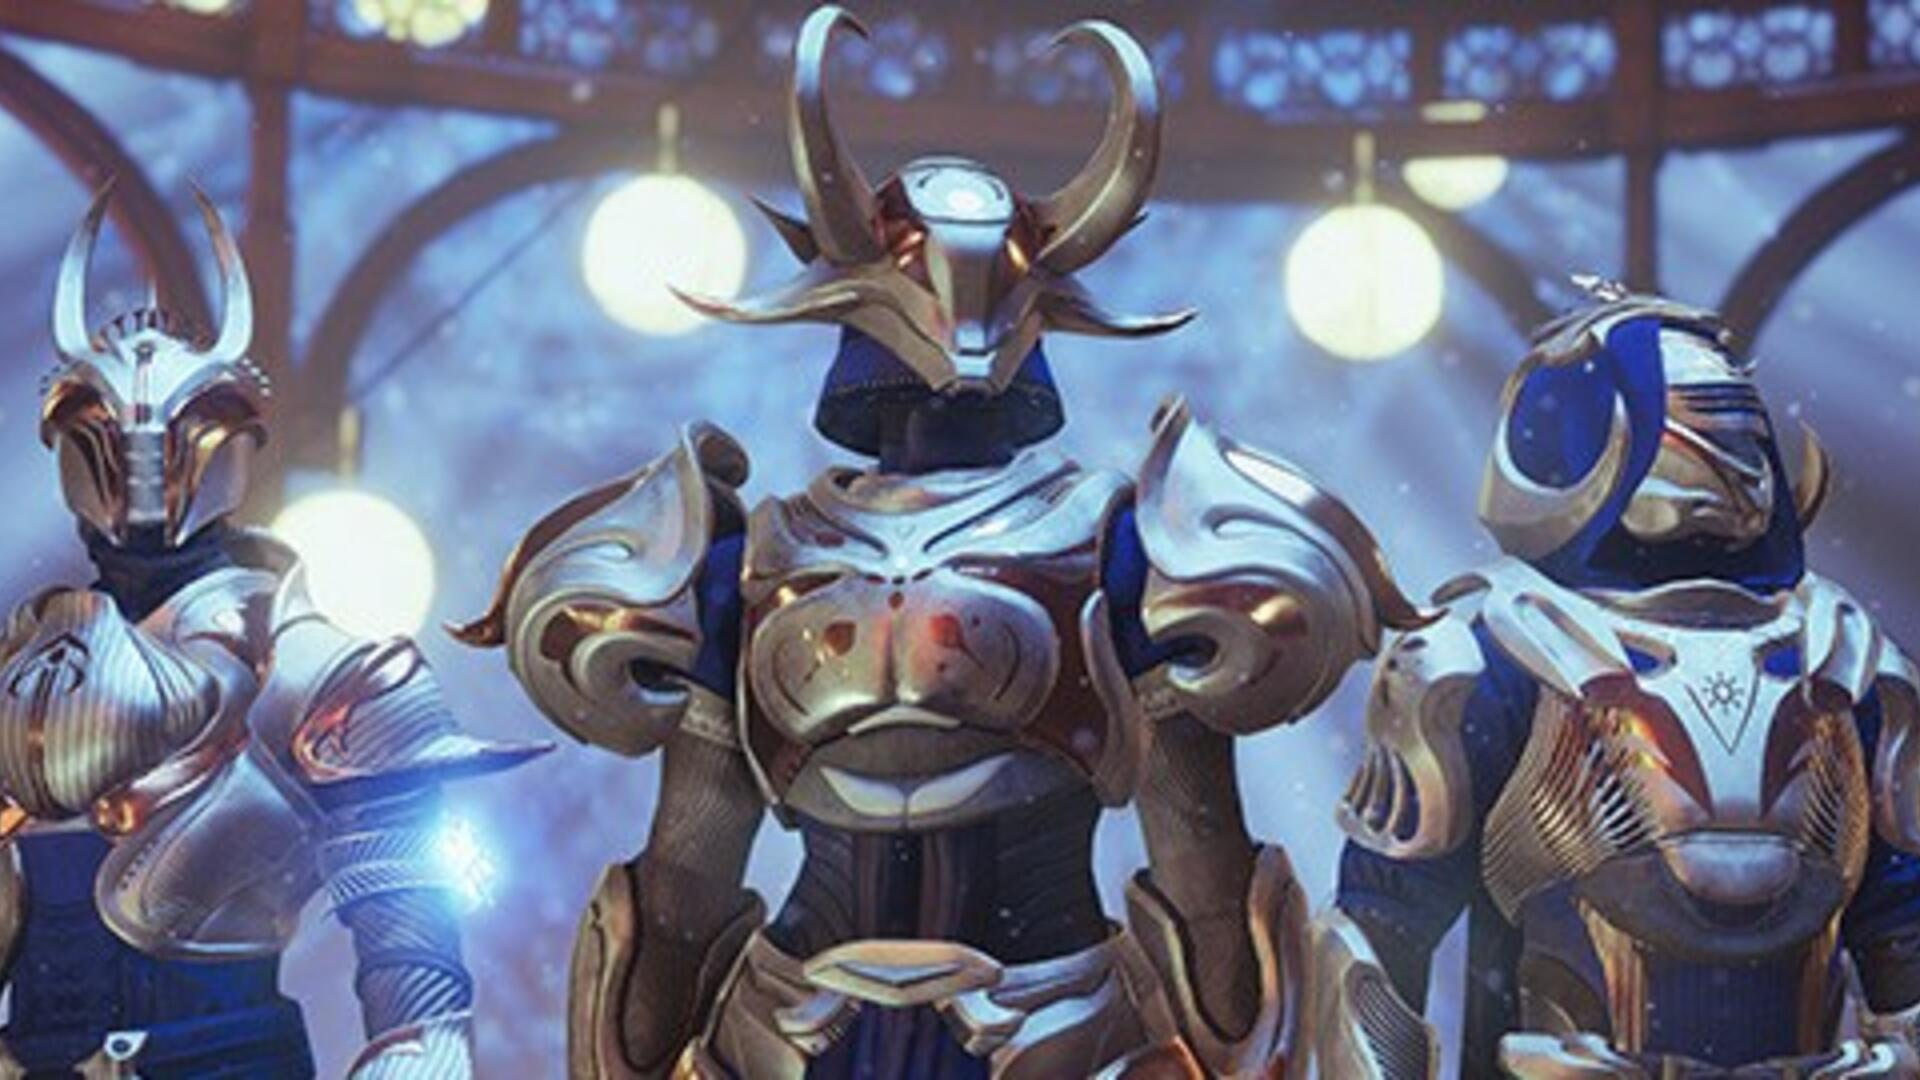 Destiny 2 The Dawning Event - End Date, New Weapons, Dawning Engrams - Everything we Know